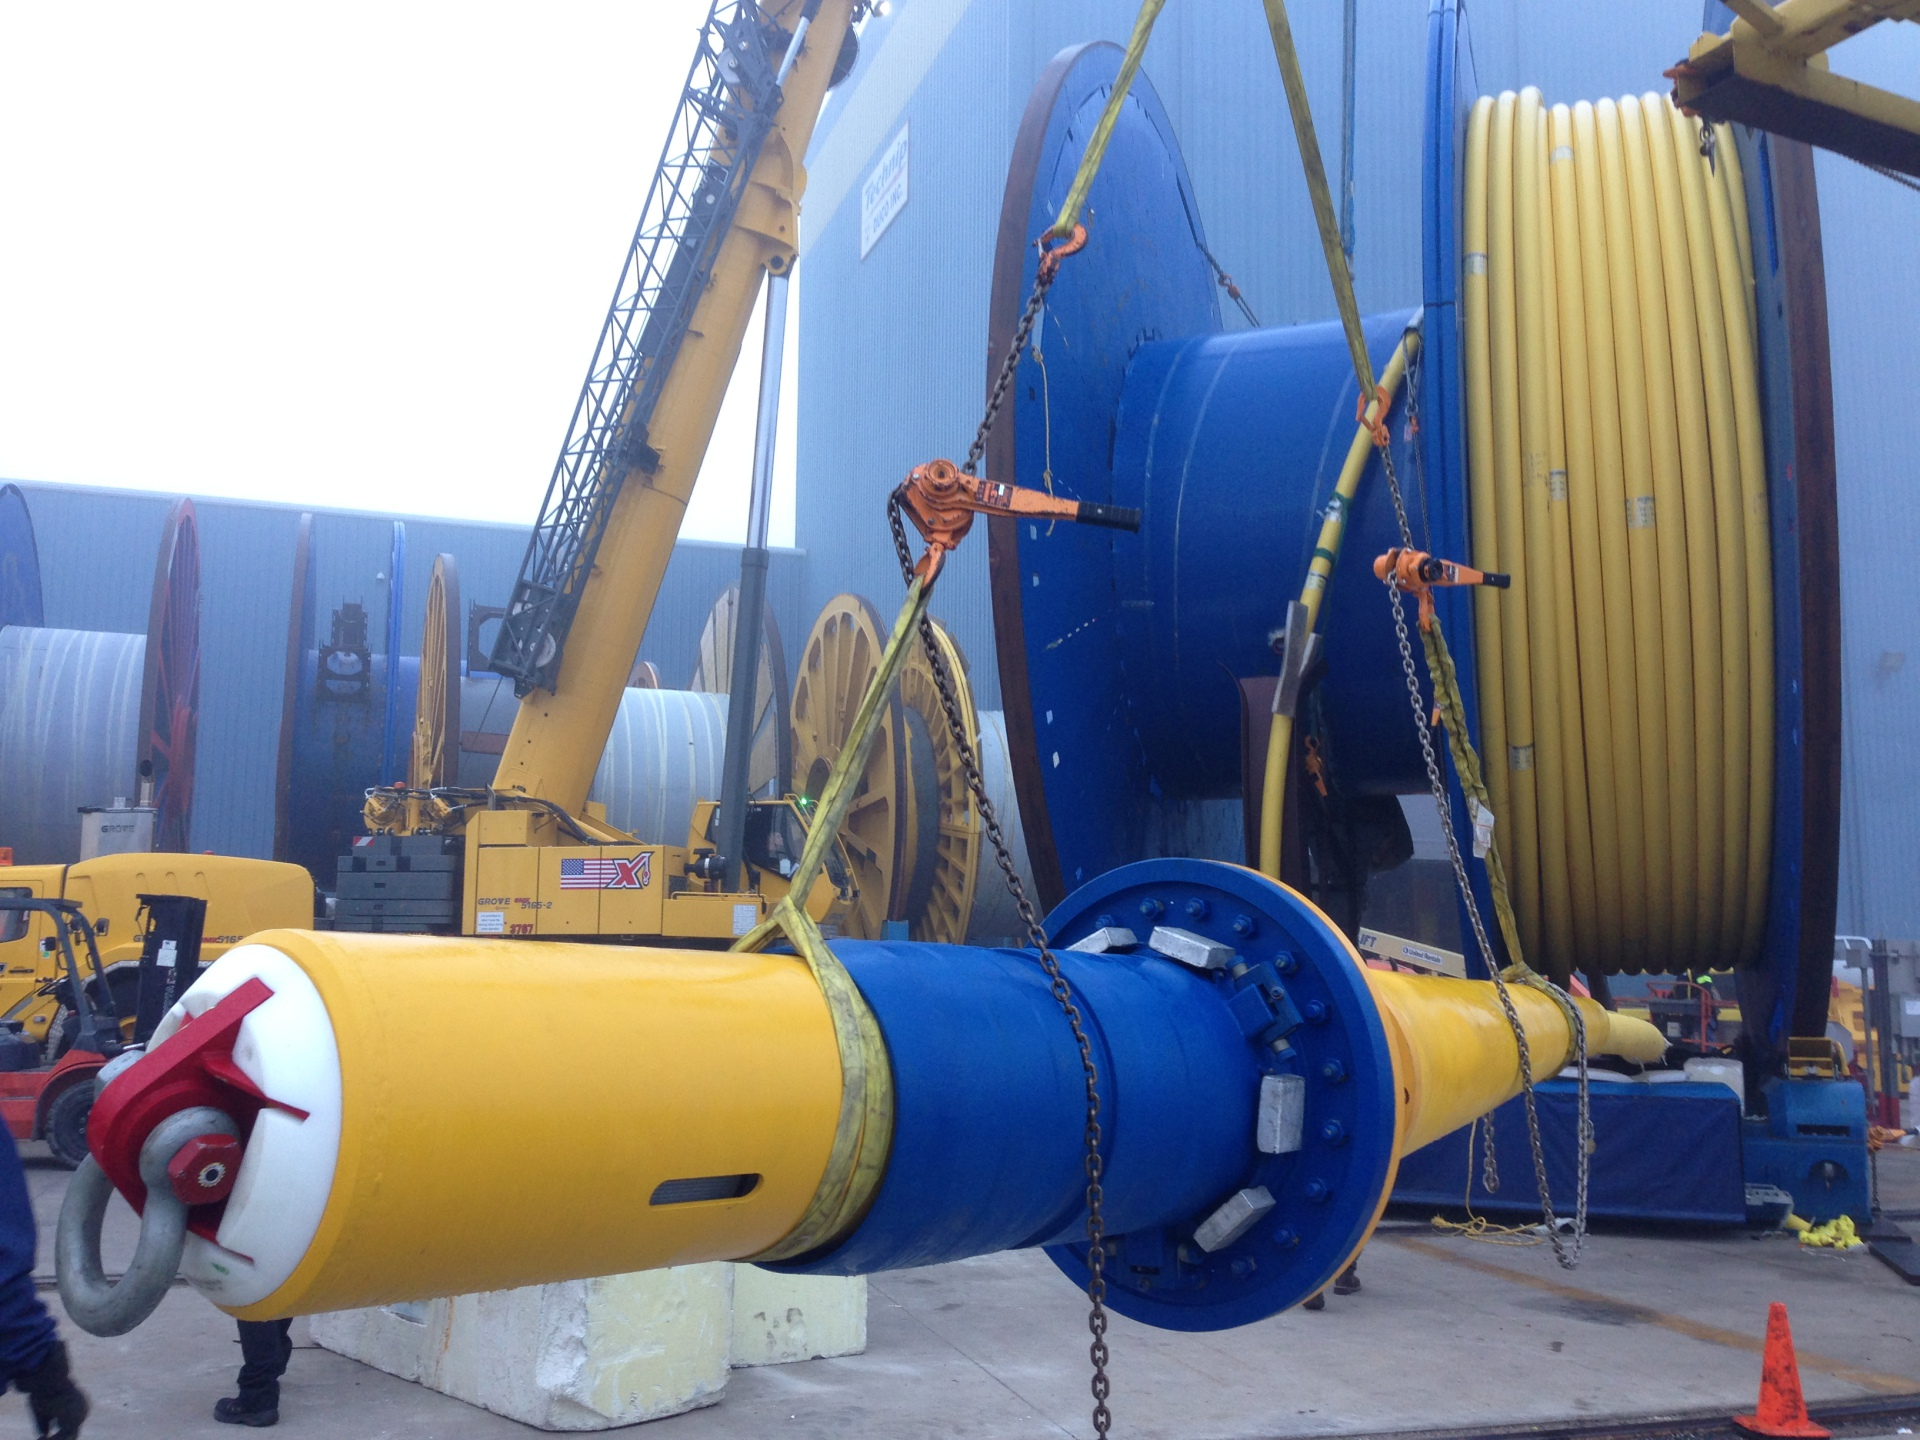 Subsea, Umbilical, Infield, Dynamic, Technip, Reels, Load out, System, Integration, Testing, , Mudmat, Termination, Assembly, SUTA, IUTA, Third, Party Inspection, Channelview, Houston, Texas, Dragon, Deepwater, Engineering, Management, Consultants, Installation, Commissioning, Packing, Reels, Carousel, Topside, BSLM, Bend, Stiffner, Latch, Mechanism, Pull, Head